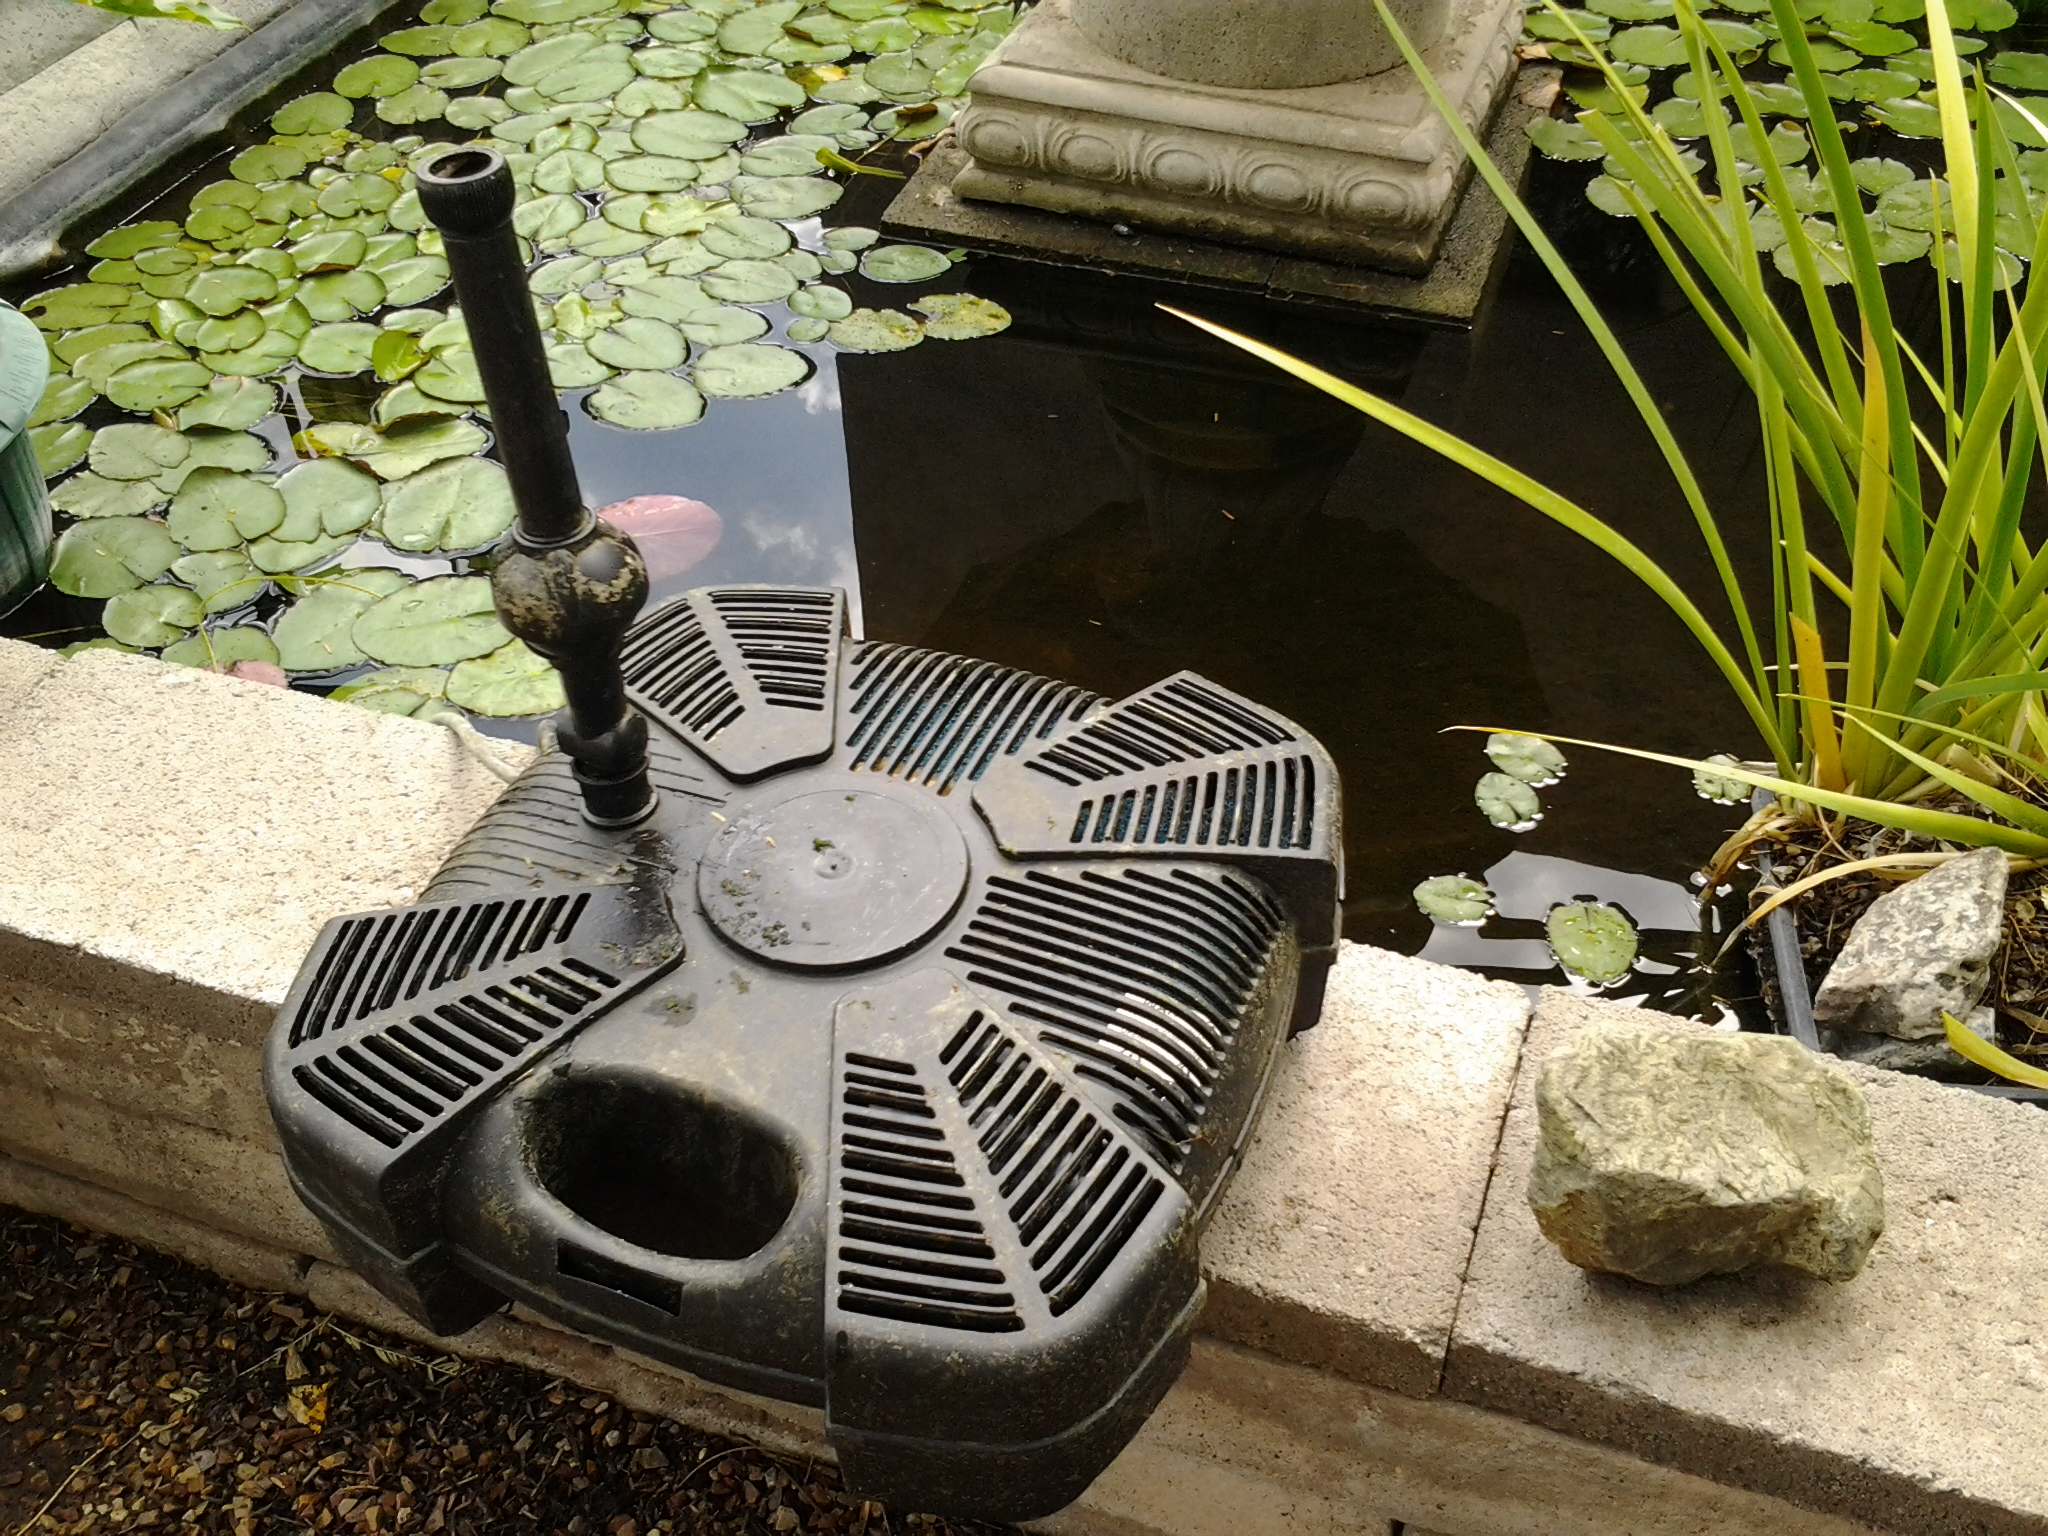 Best pond filter system all in one lifegard pump with uv for Best small pond filter